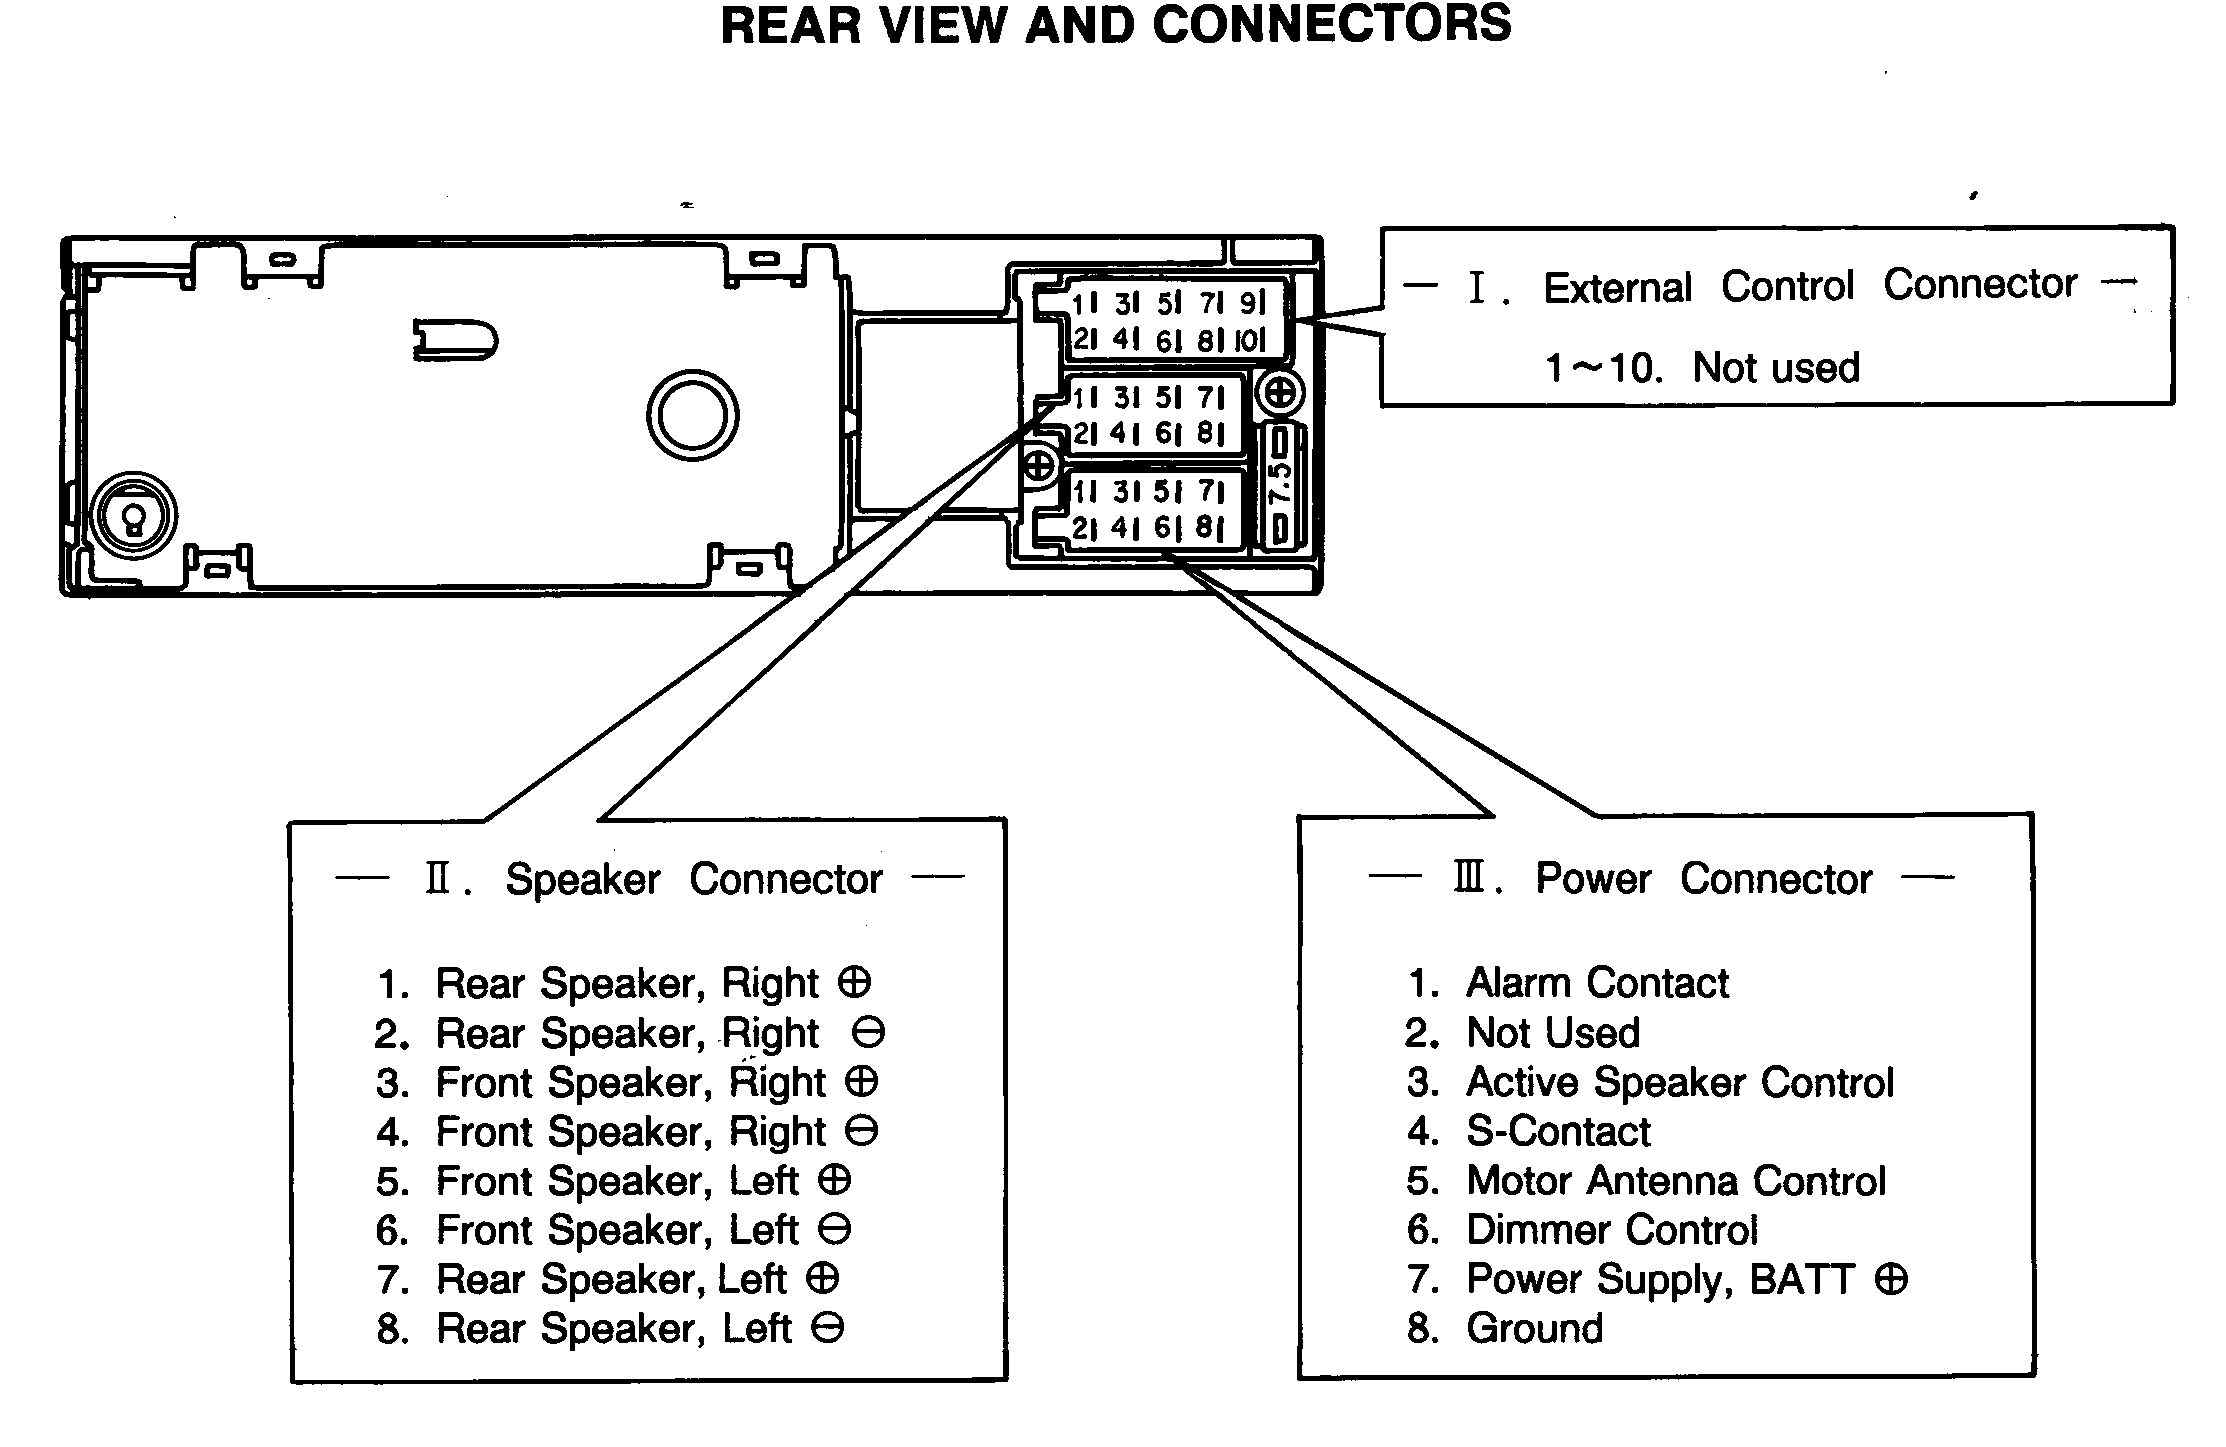 Mk4 Jetta Radio Wiring - Wiring Diagram Dash on vw headlight relay, vw headlight plug, vw fuel pump diagram, vw headlight turn signals, vw headlight assembly, vw steering column diagram, vw headlight switch, vw alternator diagram, 1968 volkswagen headlight switch diagram, vw fuse box diagram,